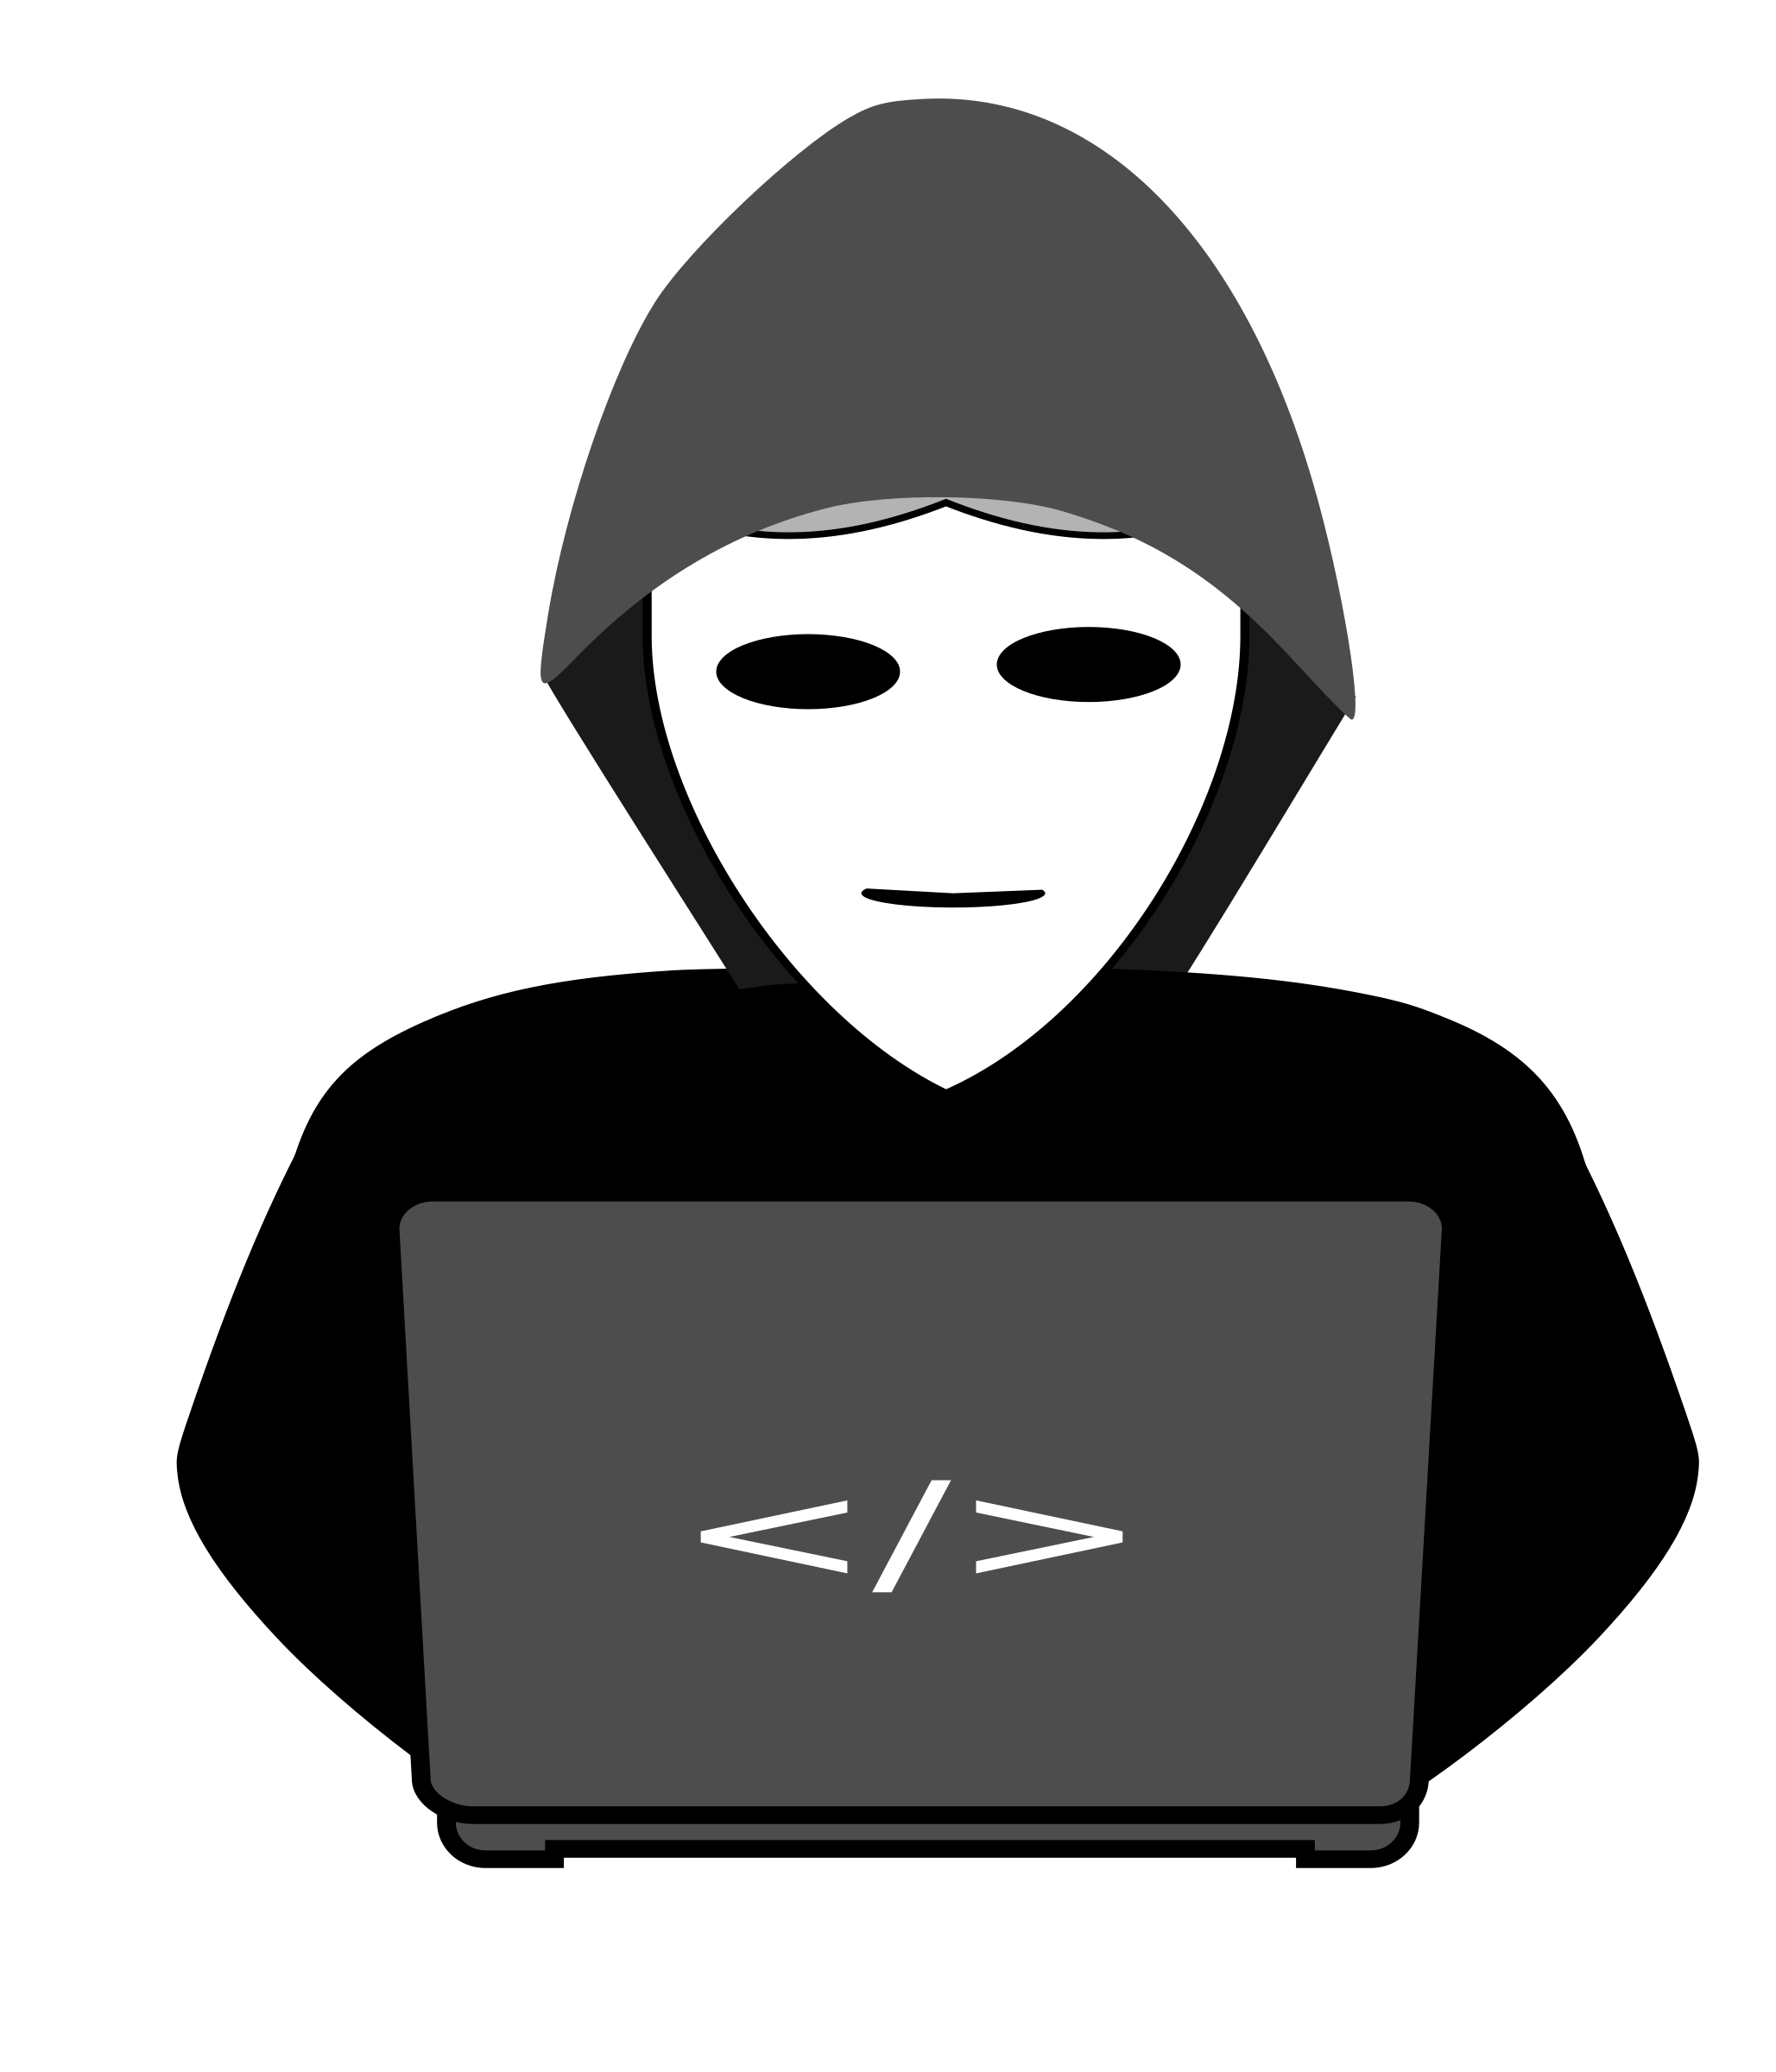 Pc cartoon png. Clipart anonymous hacker behind